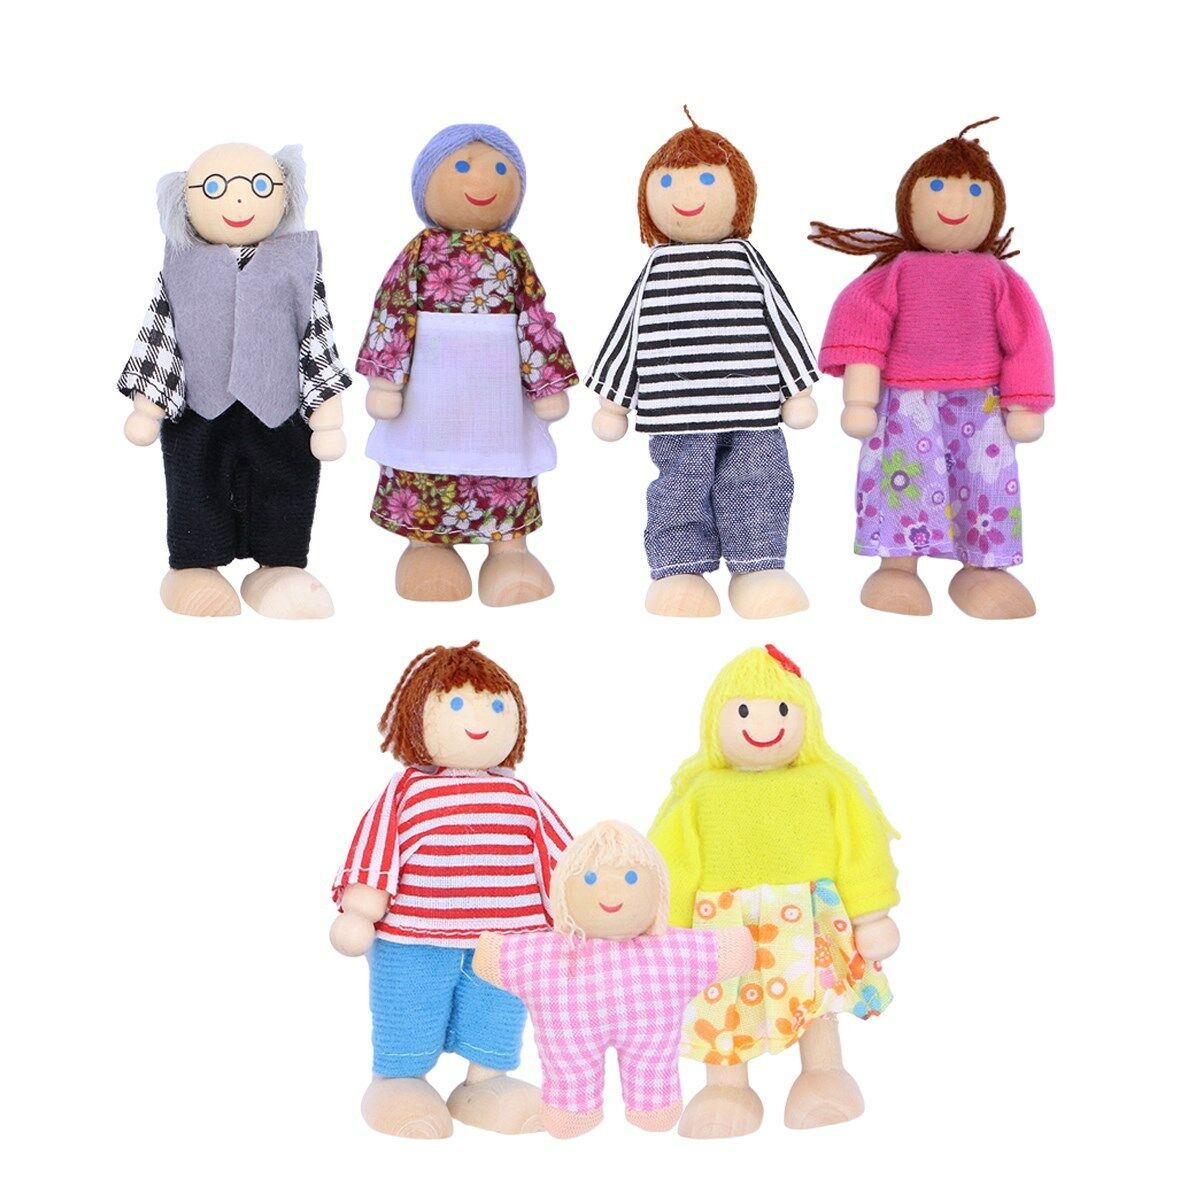 Wooden Furniture Dolls House Family Miniature 7 People Doll Kids Children Toys 3